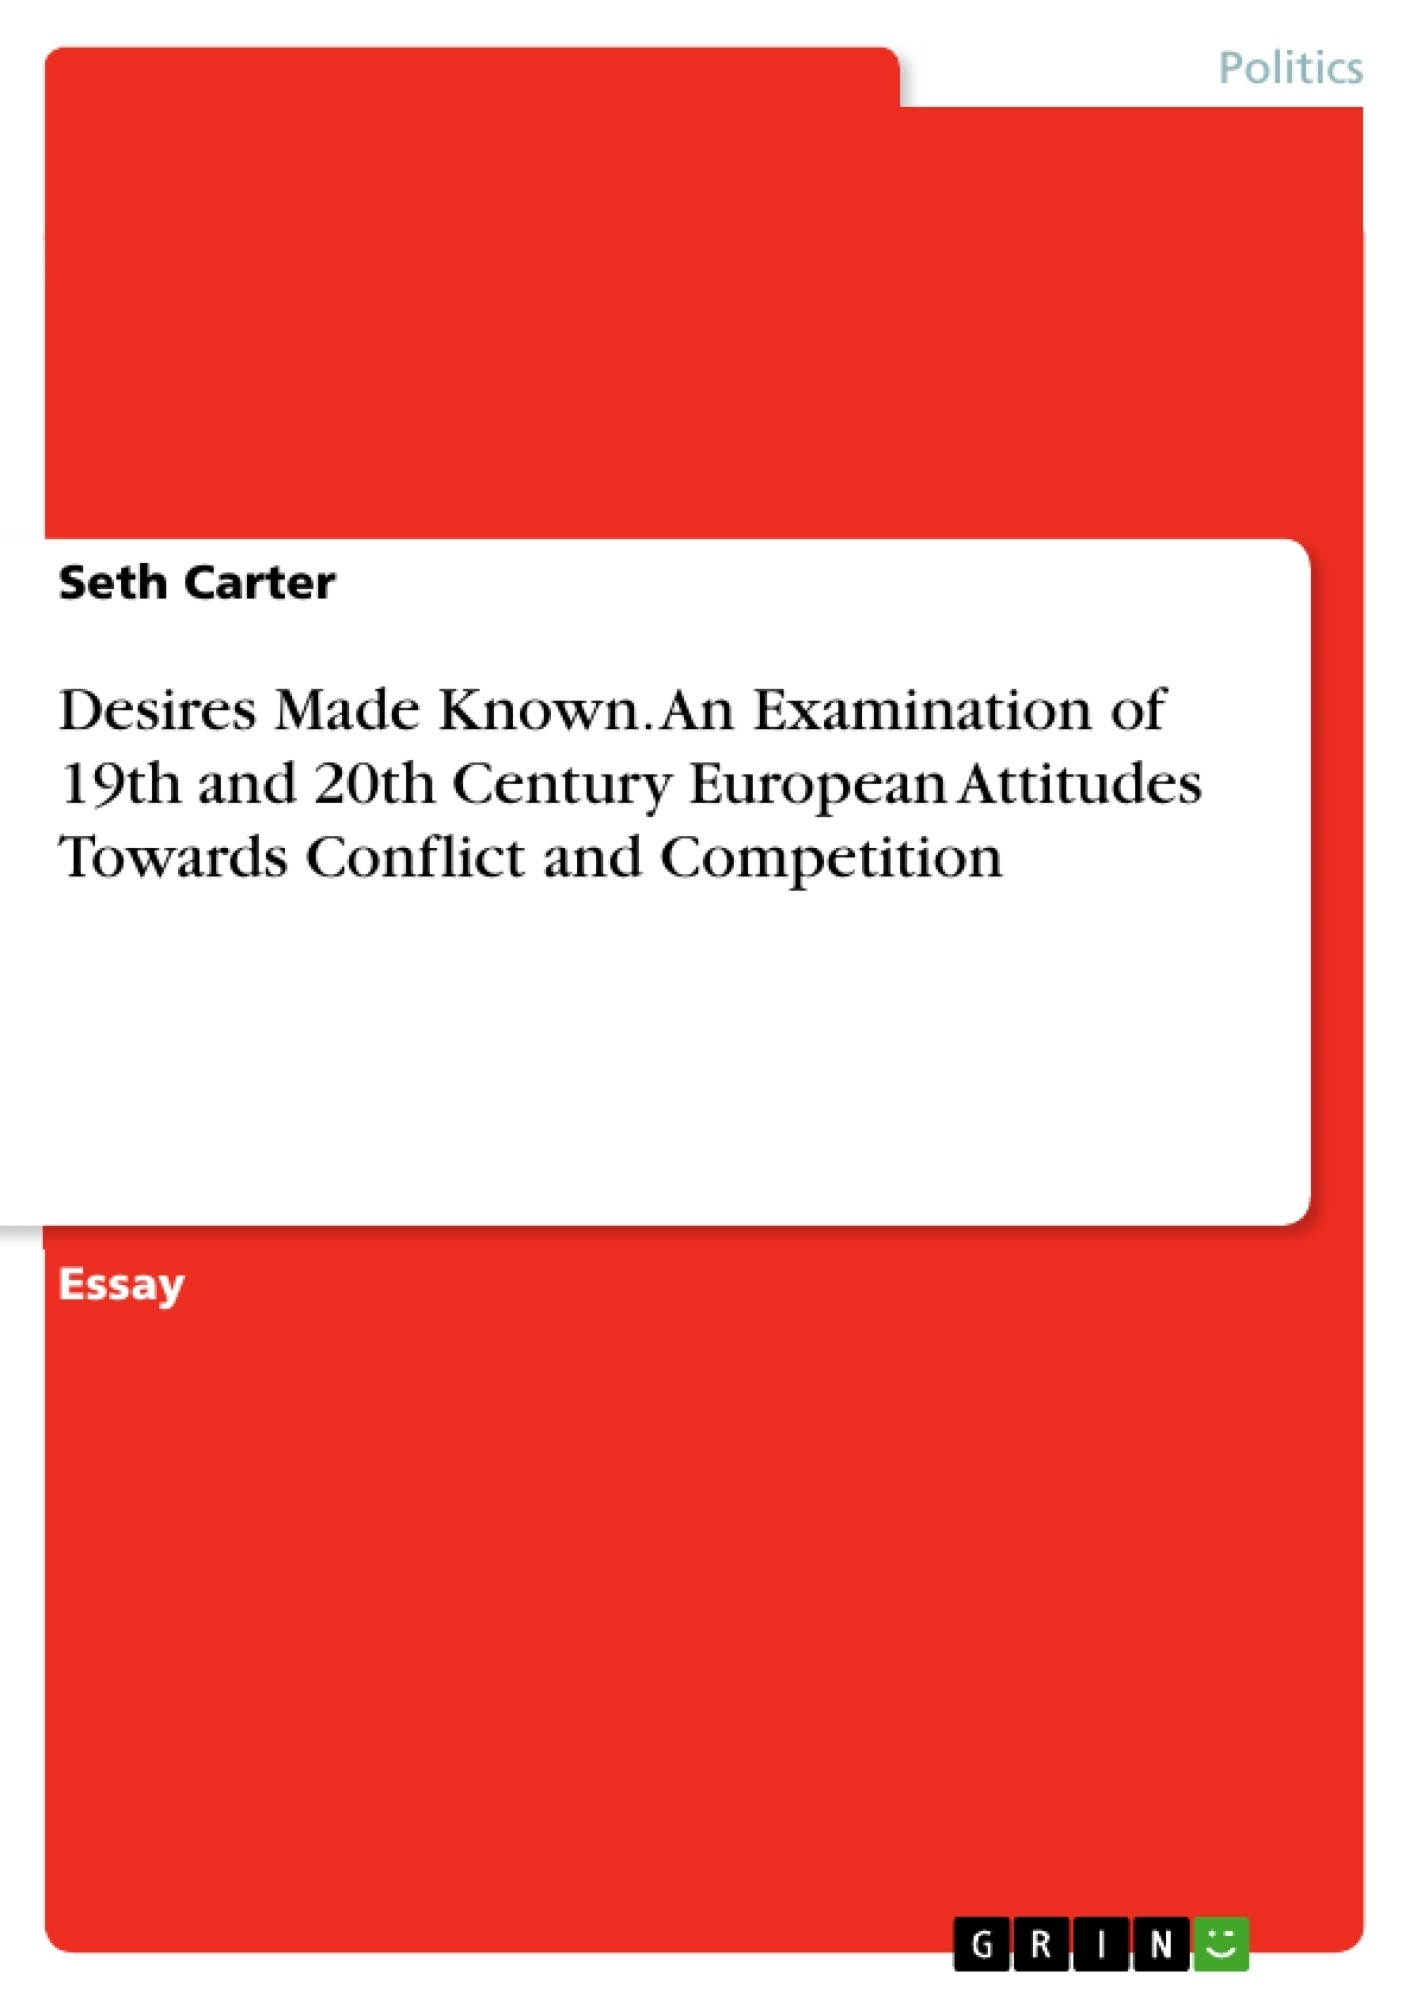 Title: Desires Made Known. An Examination of 19th and 20th Century European Attitudes Towards Conflict and Competition